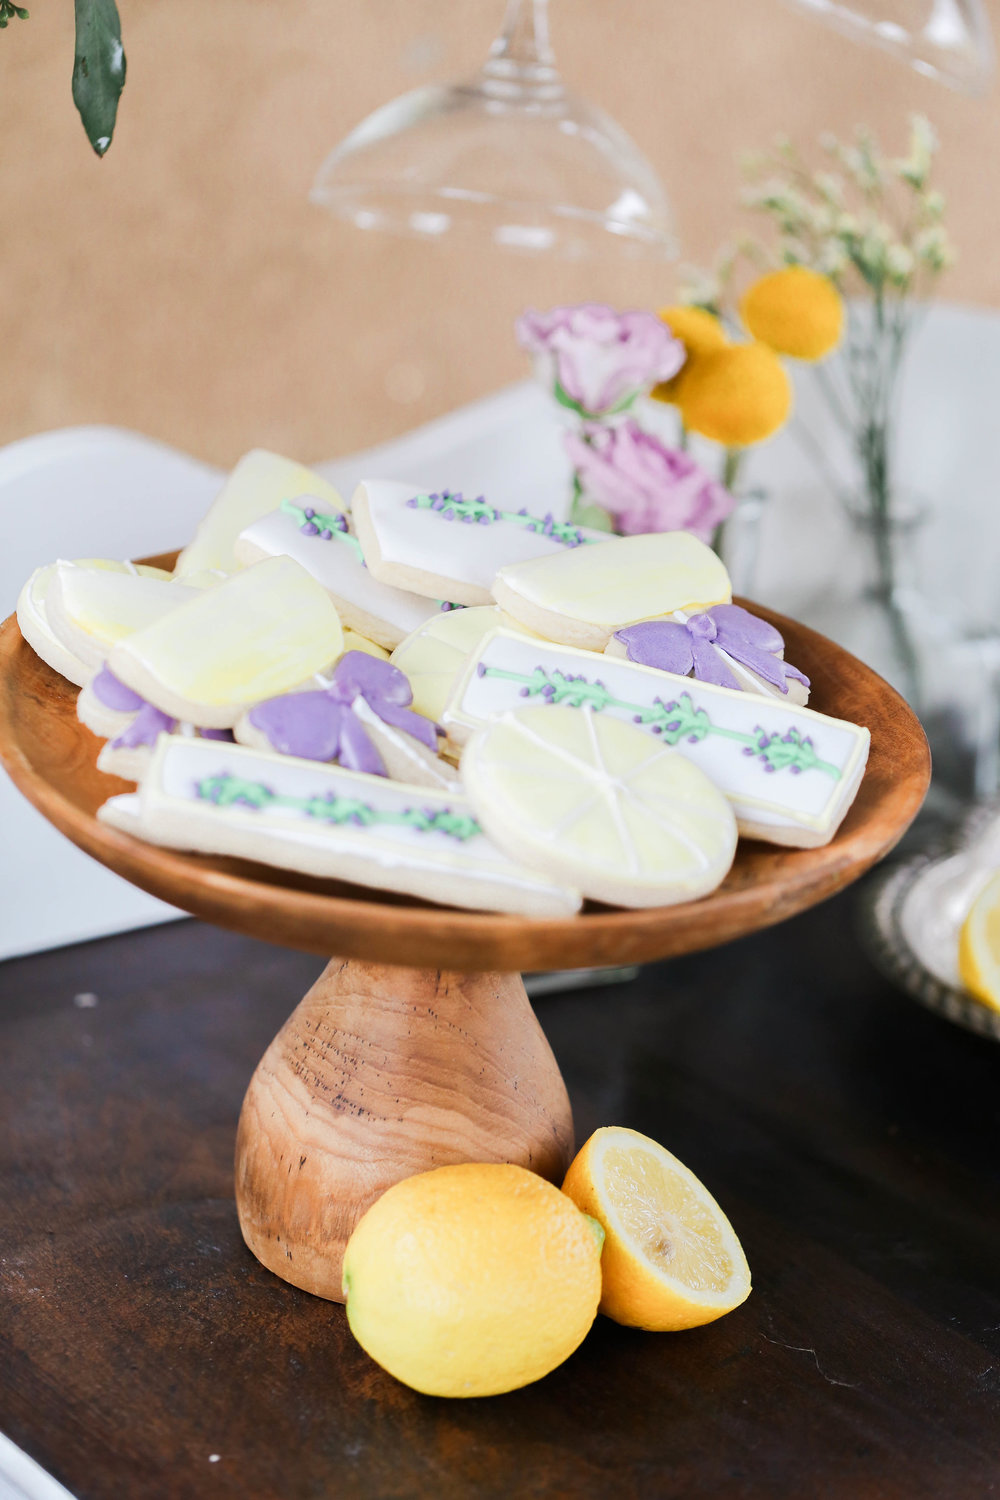 Bridal Shower Inspiration | Lavender and Lemon | Sugar Cookies shaped like Lemons